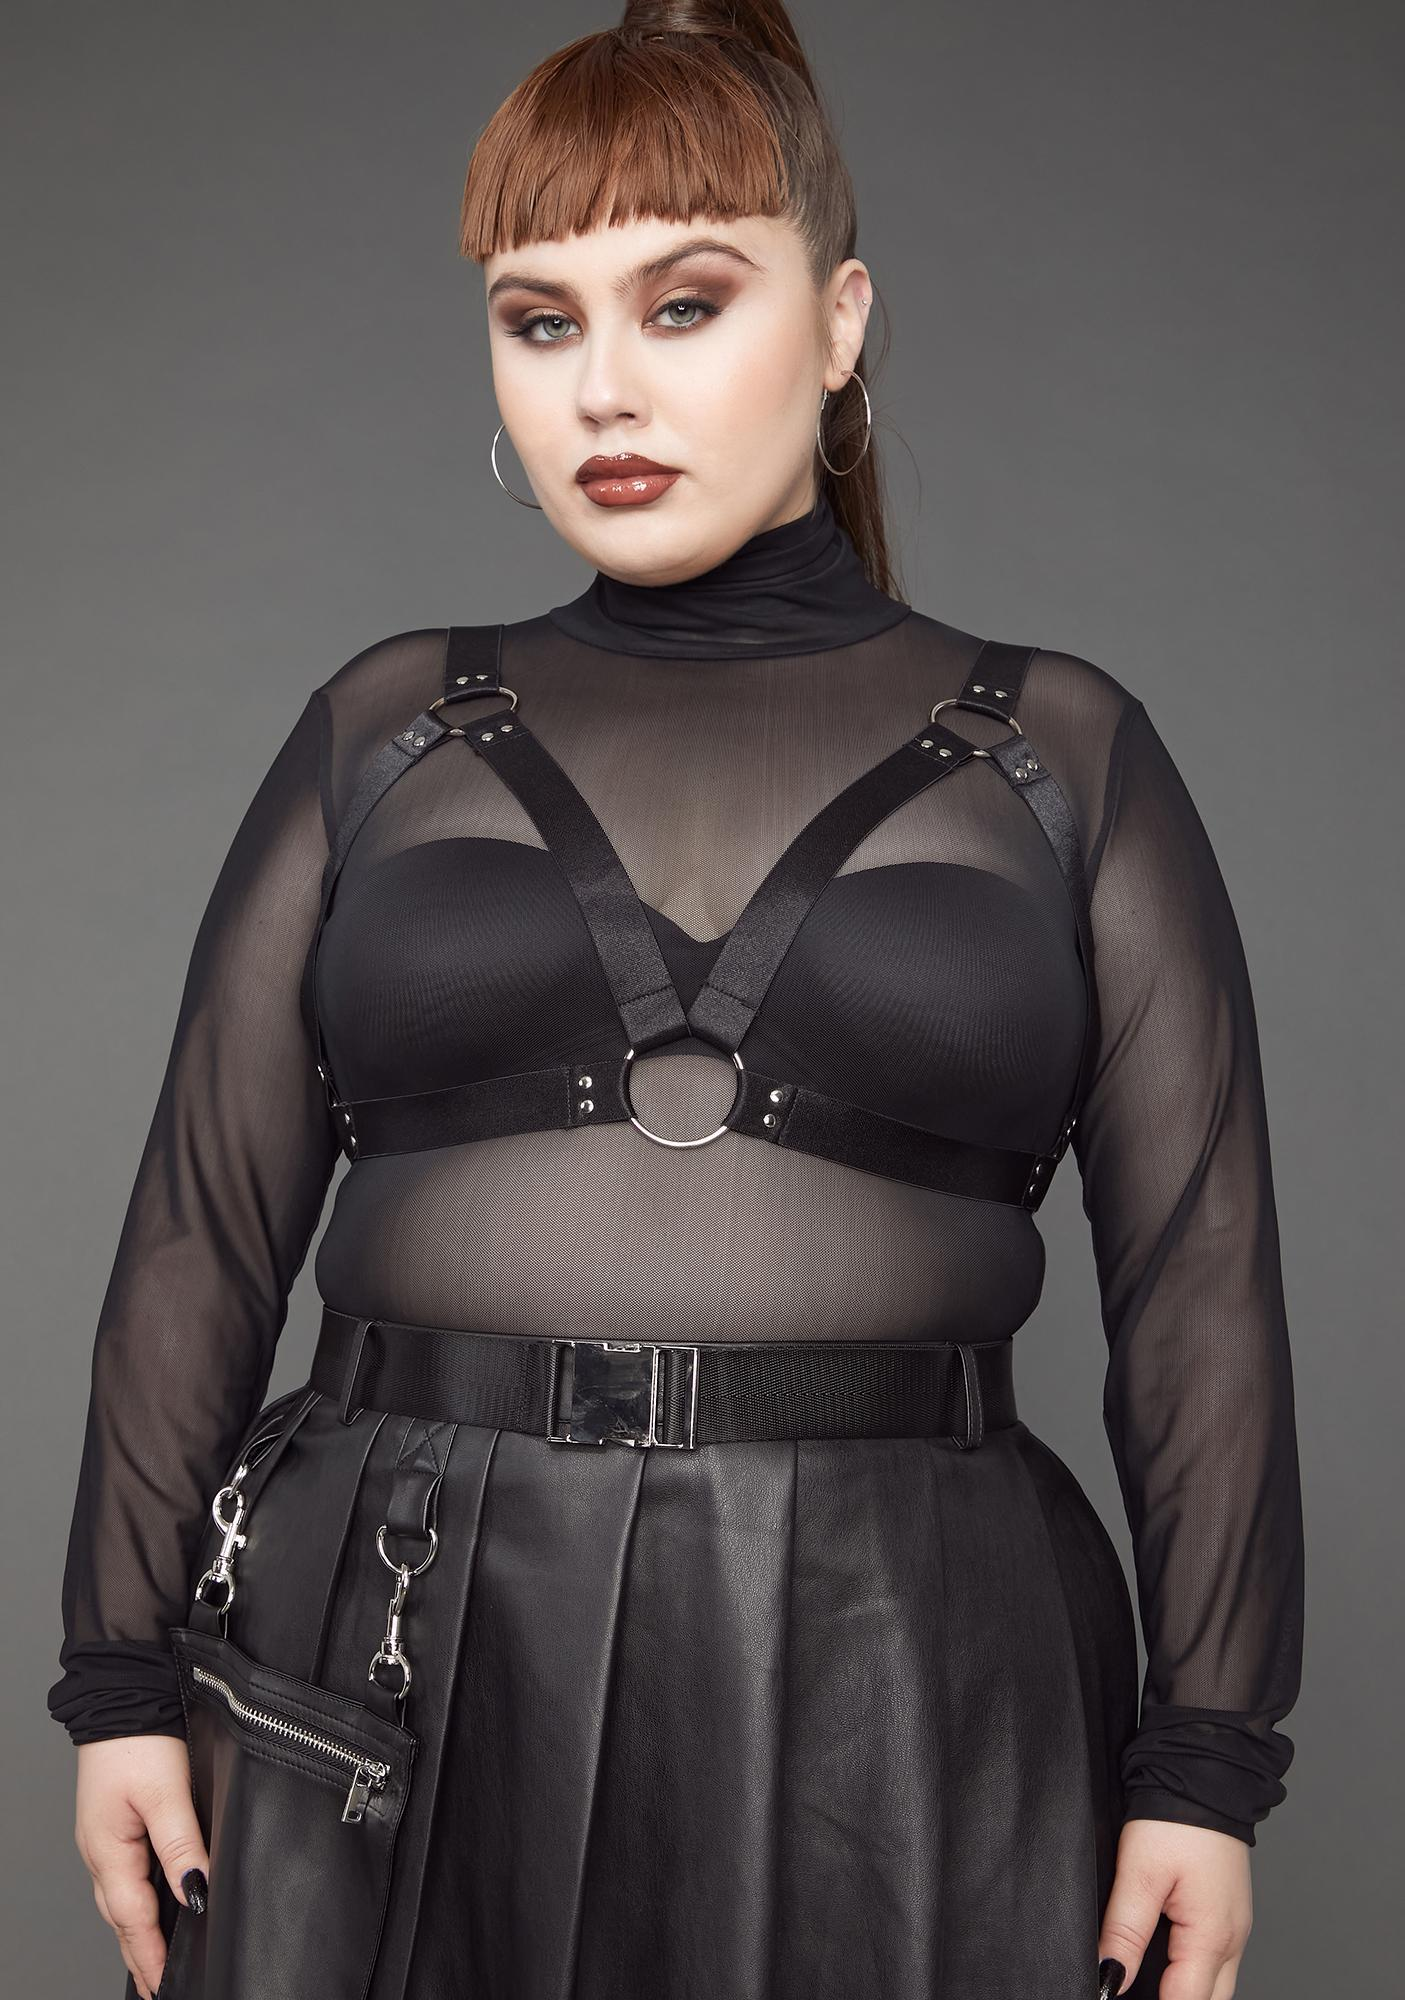 Poster Grl My Naughty Habits Mesh Top And Harness Set